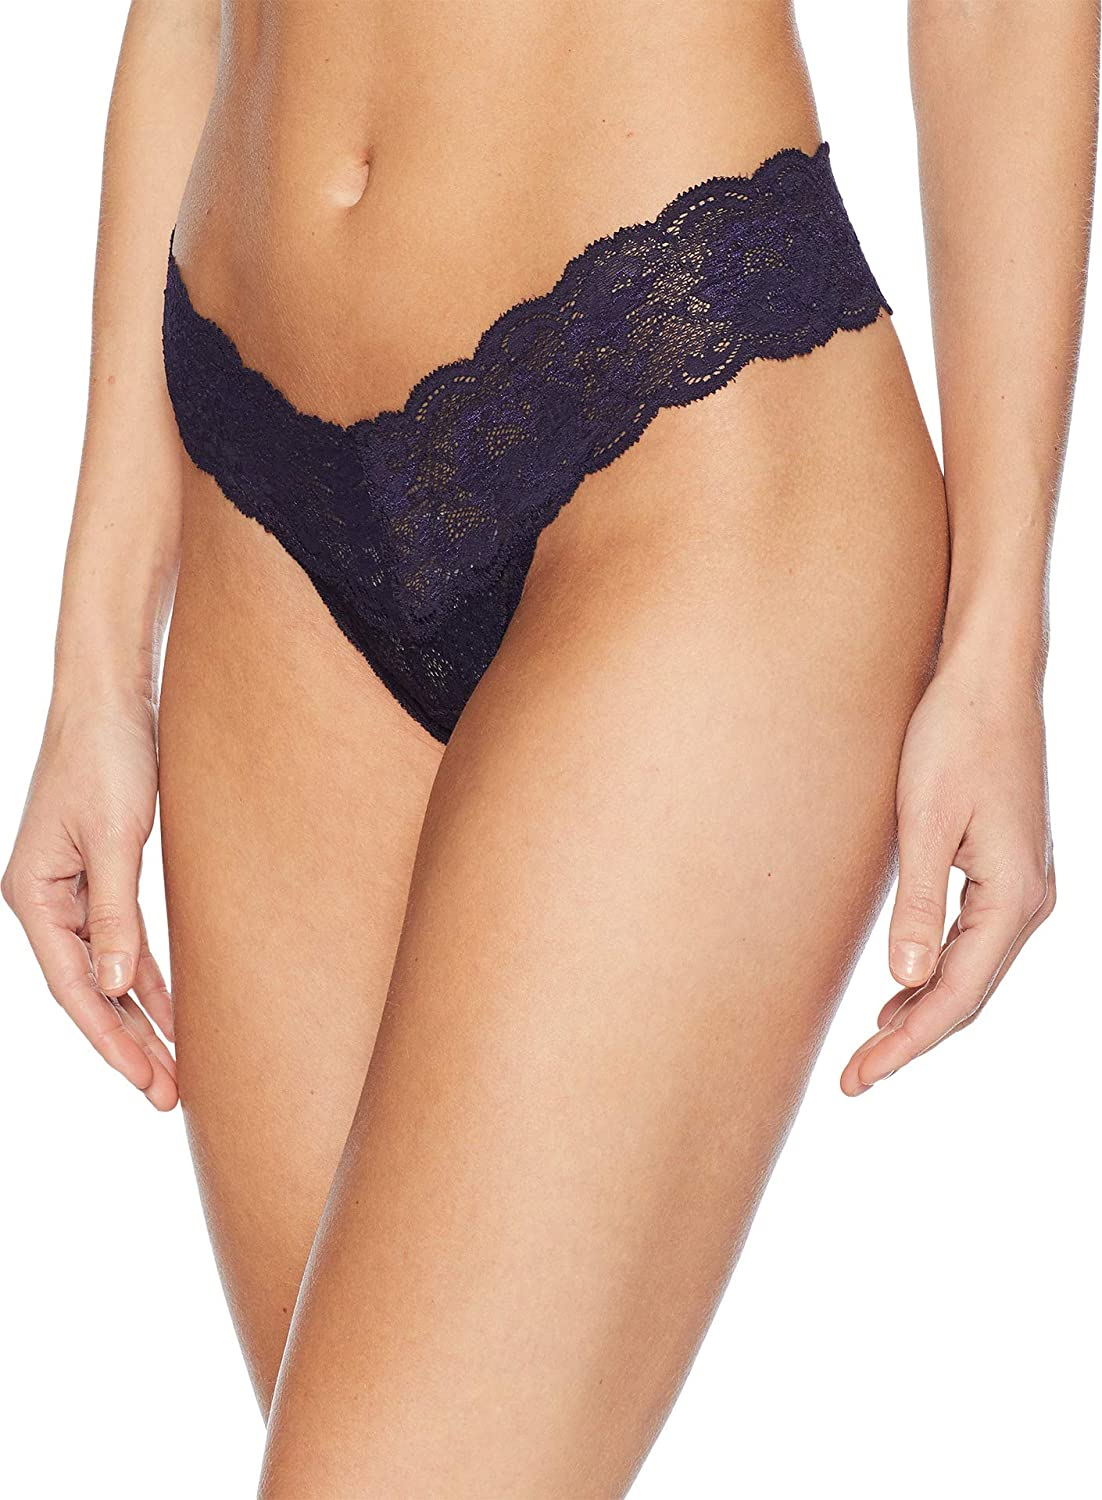 Cosabella Womens Standard Never Say Never CutieTM Lowrider Thong